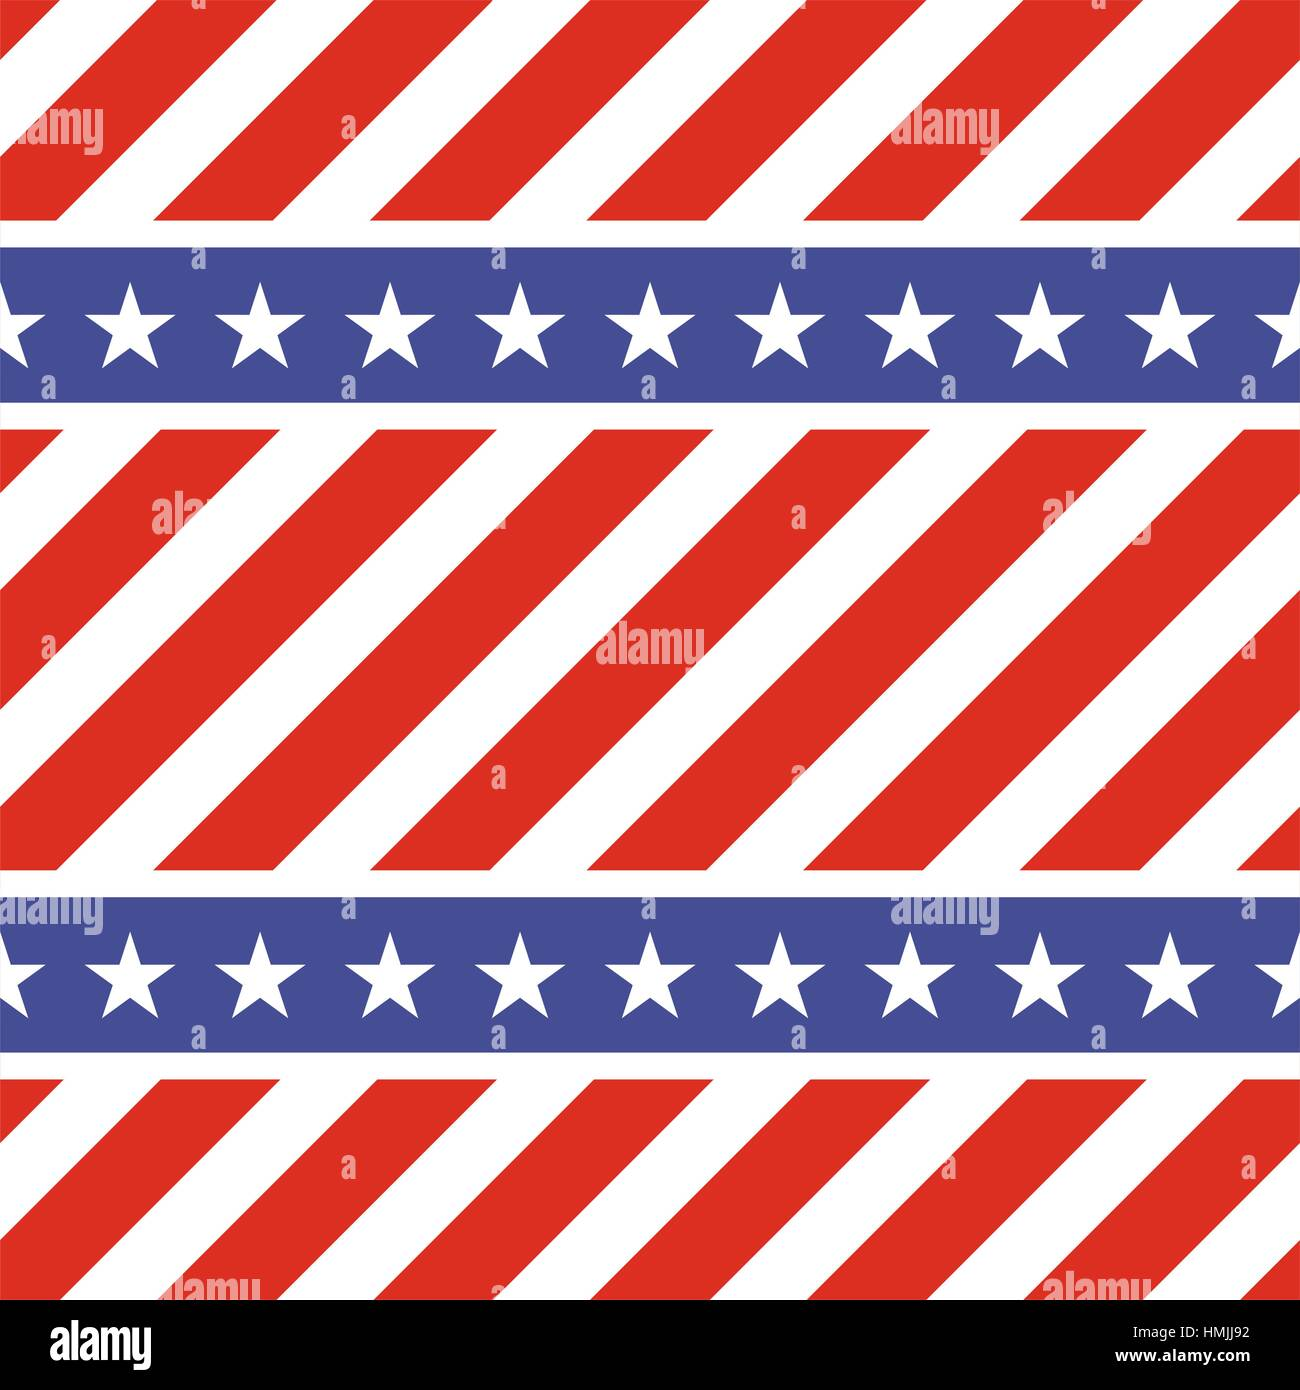 Patriotic usa seamless pattern american flag symbols and colors american flag symbols and colors background for 4th july usa independence day stars on blue and diagonal red and whi biocorpaavc